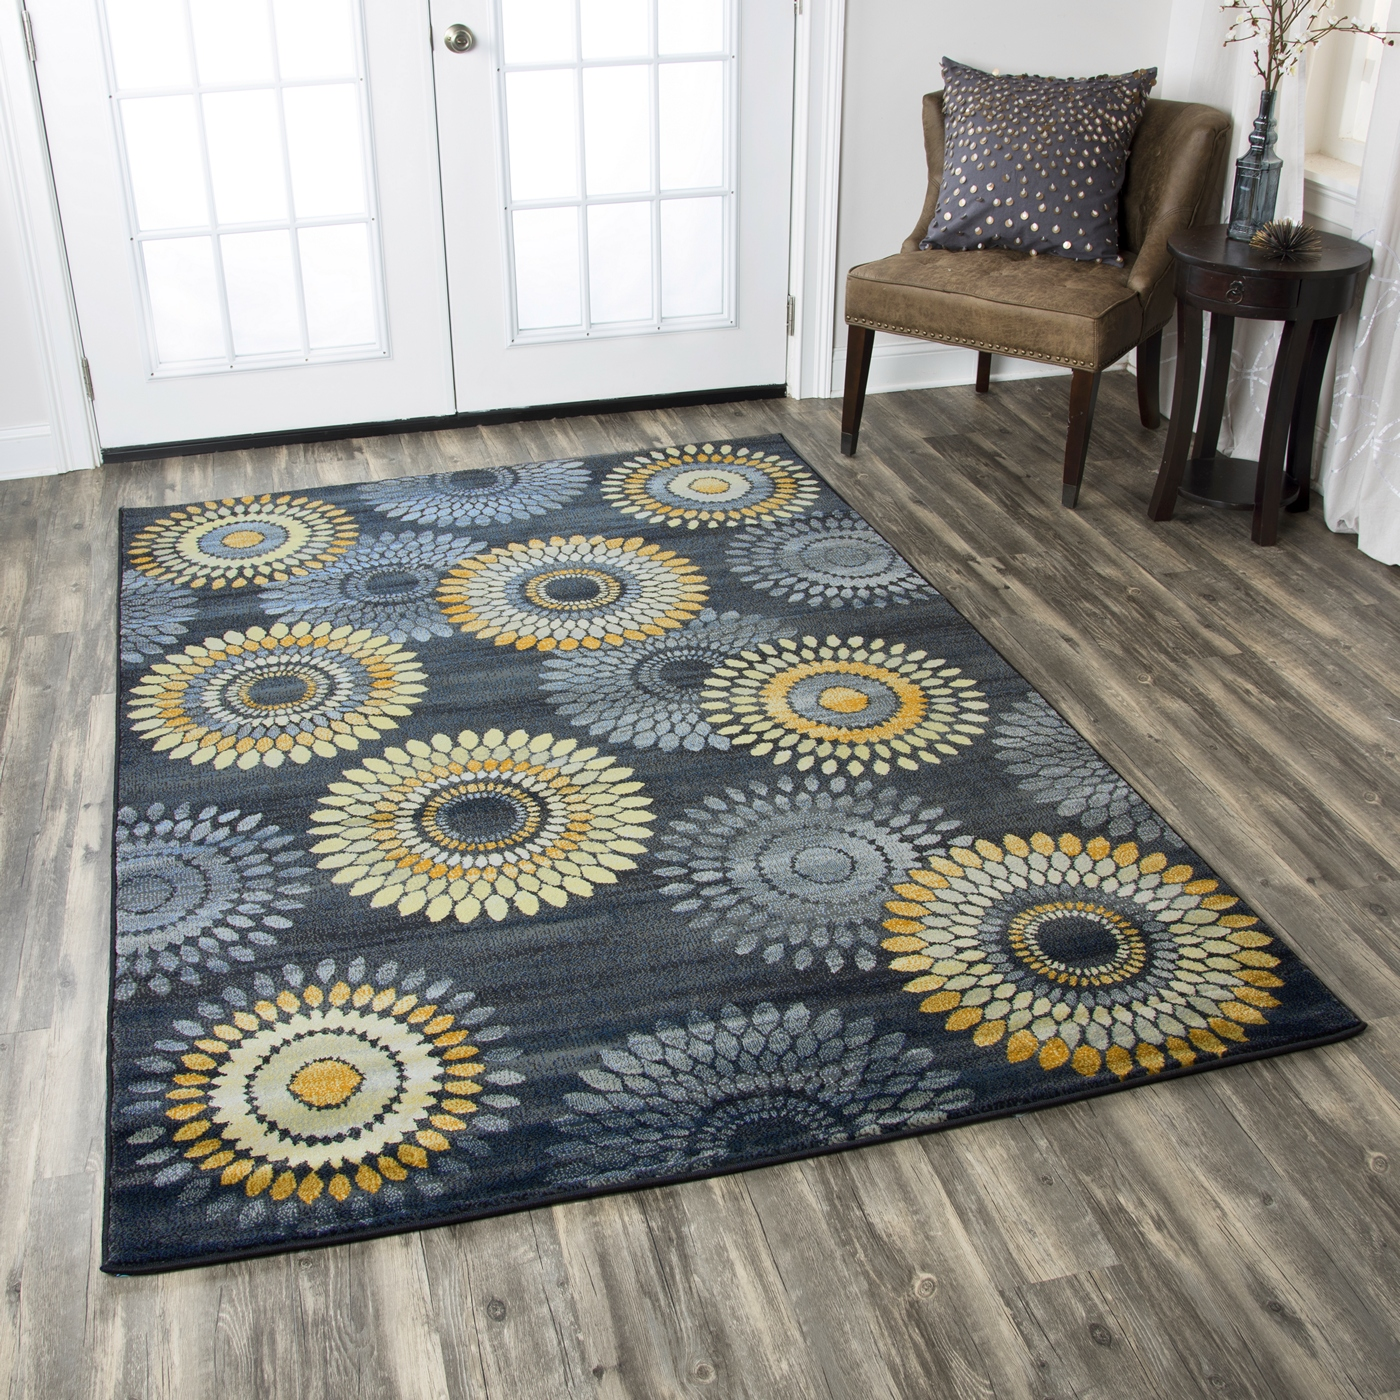 Sunflower Area Rugs Rug Roselawnlutheran